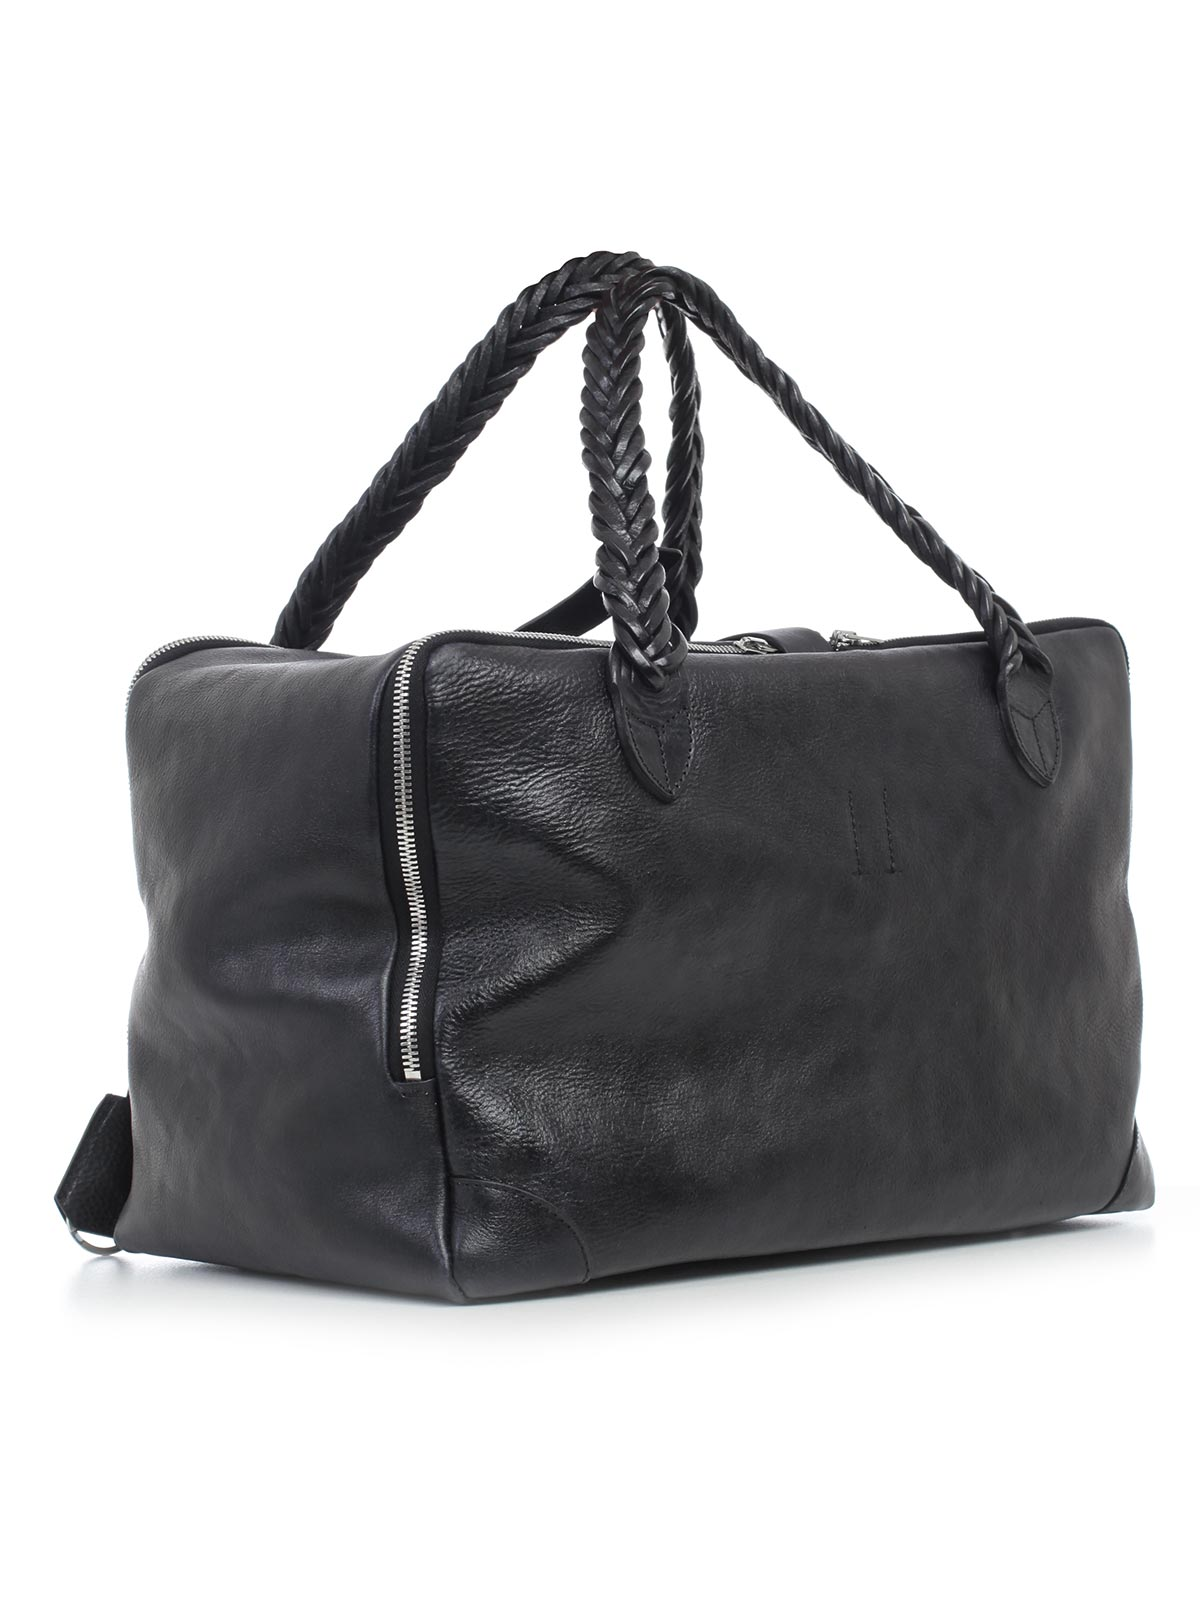 Picture of Golden Goose Deluxe Brand Bags